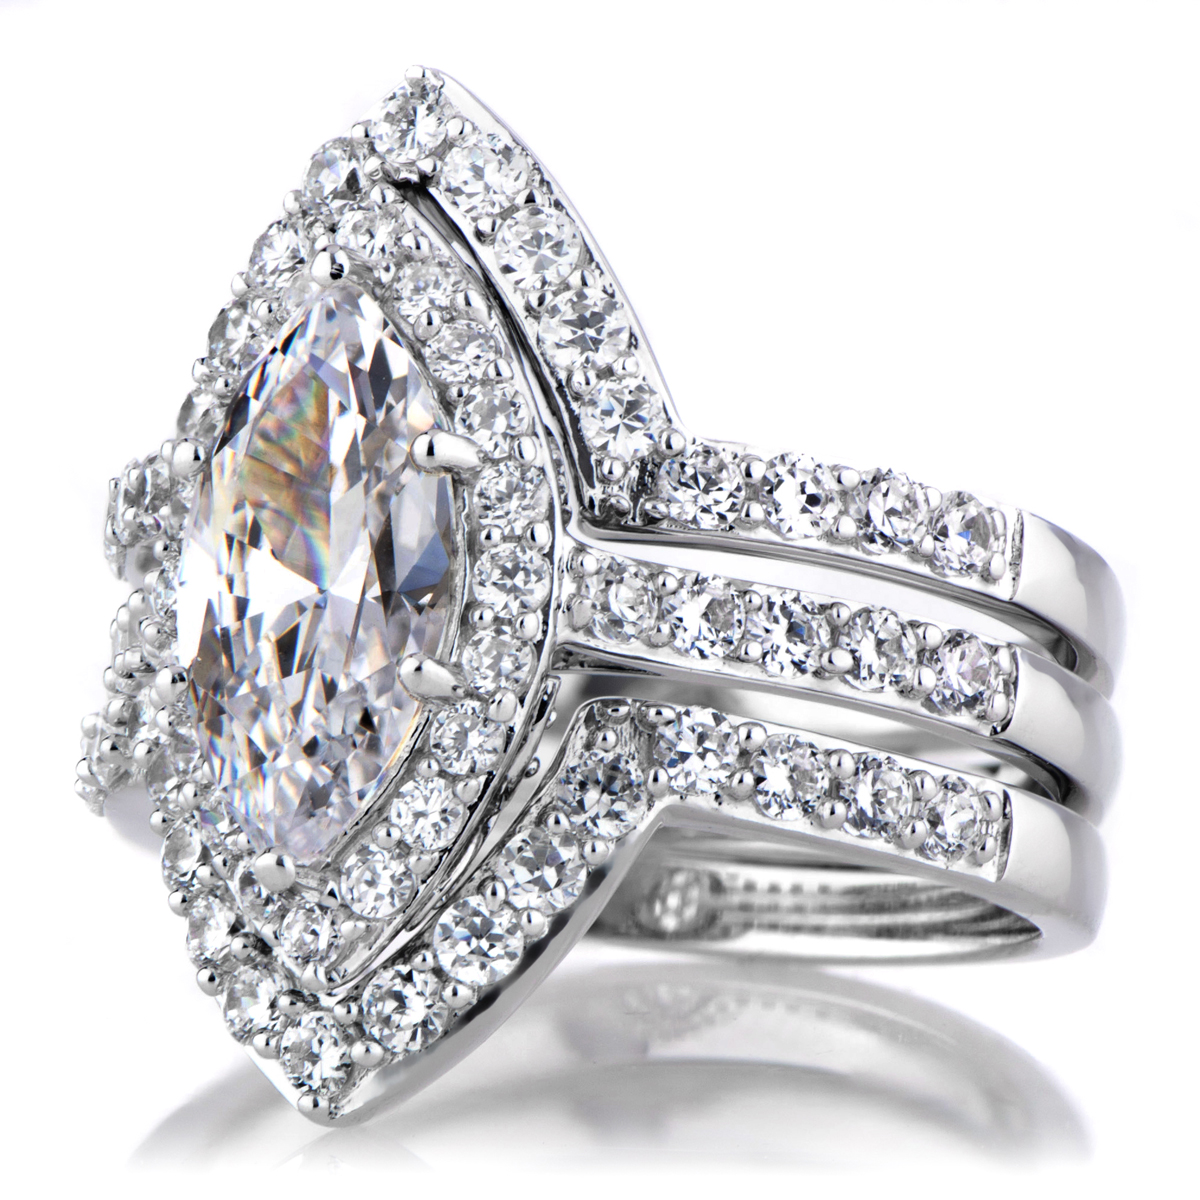 Marquise Cut Wedding Rings - Jewelry Ideas